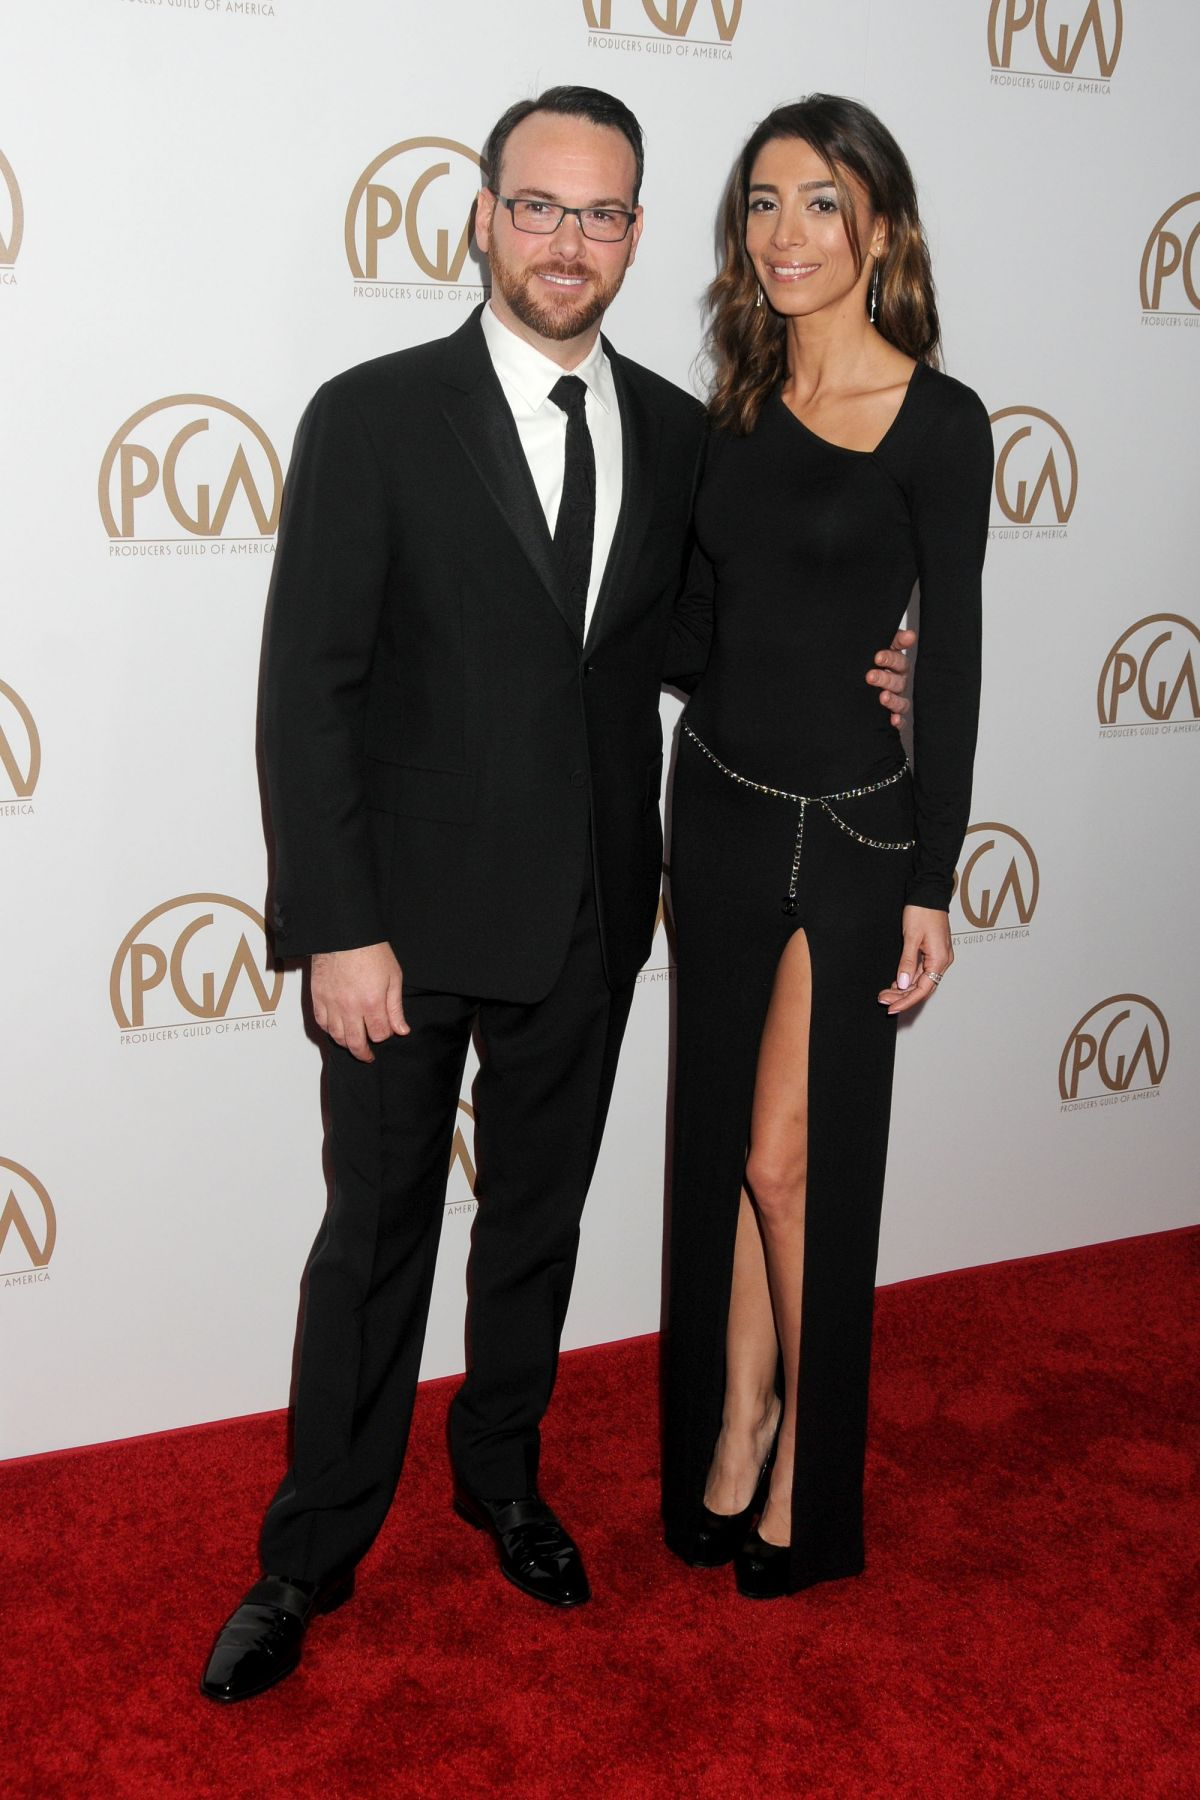 BELLA TATARIAN at 27th Annual Producers Guild Awards in Los Angeles 01/23/2016